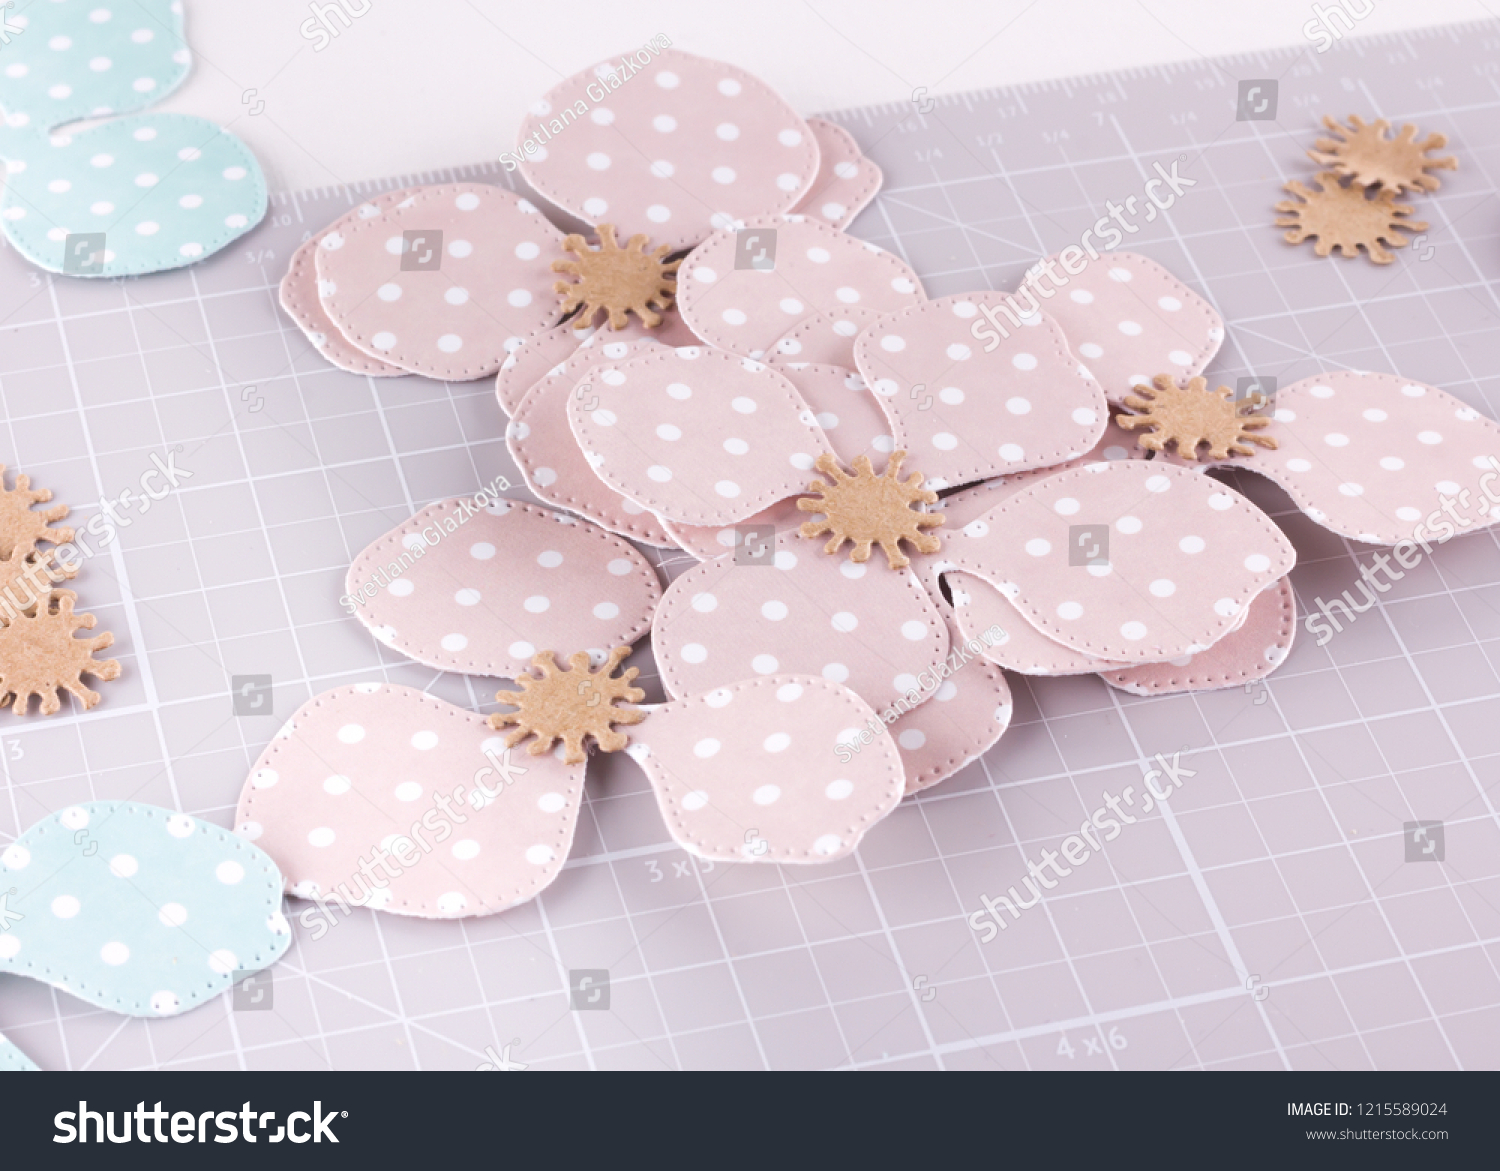 Making Diy Project Paper Decoration Craft Stock Photo Edit Now